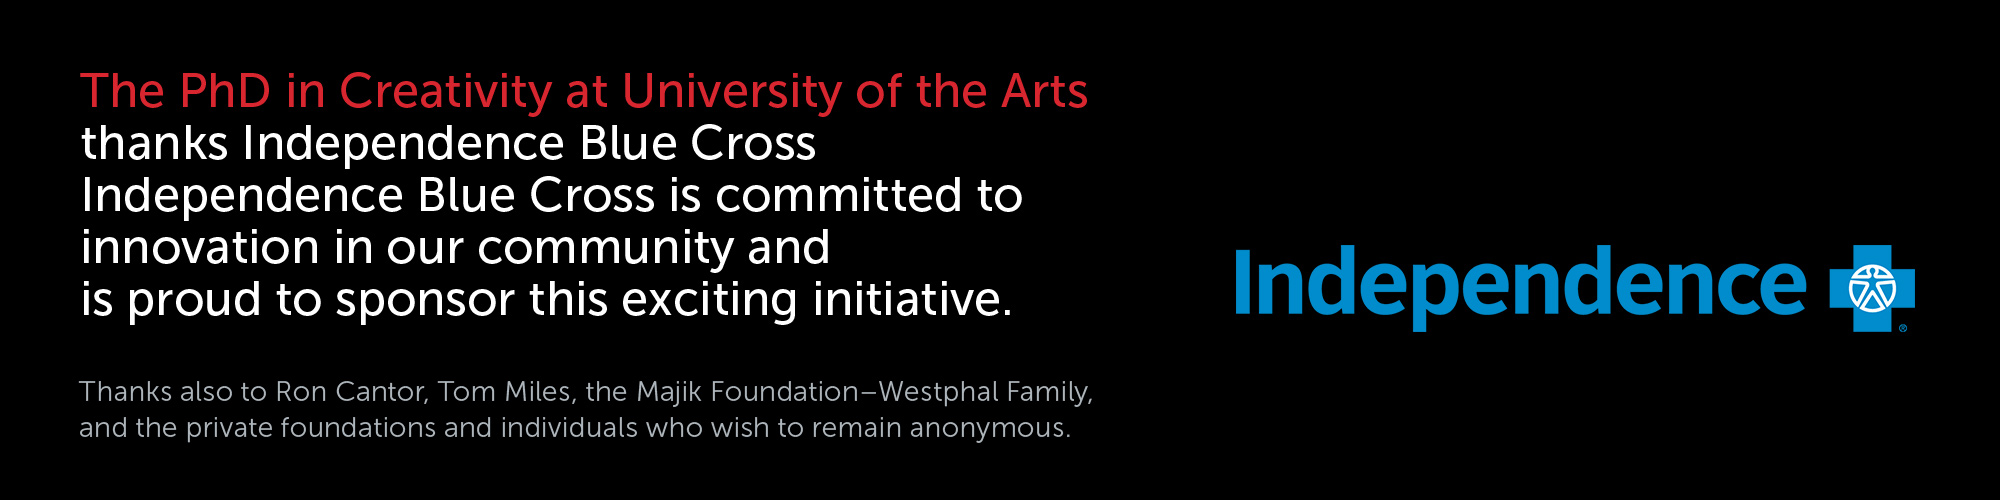 Graphic Text - The PhD in Creativity at The University of the Arts thanks Independence Blue Cross, who is commited to innovation in our community and is proud to sponsor this exciting initiative.